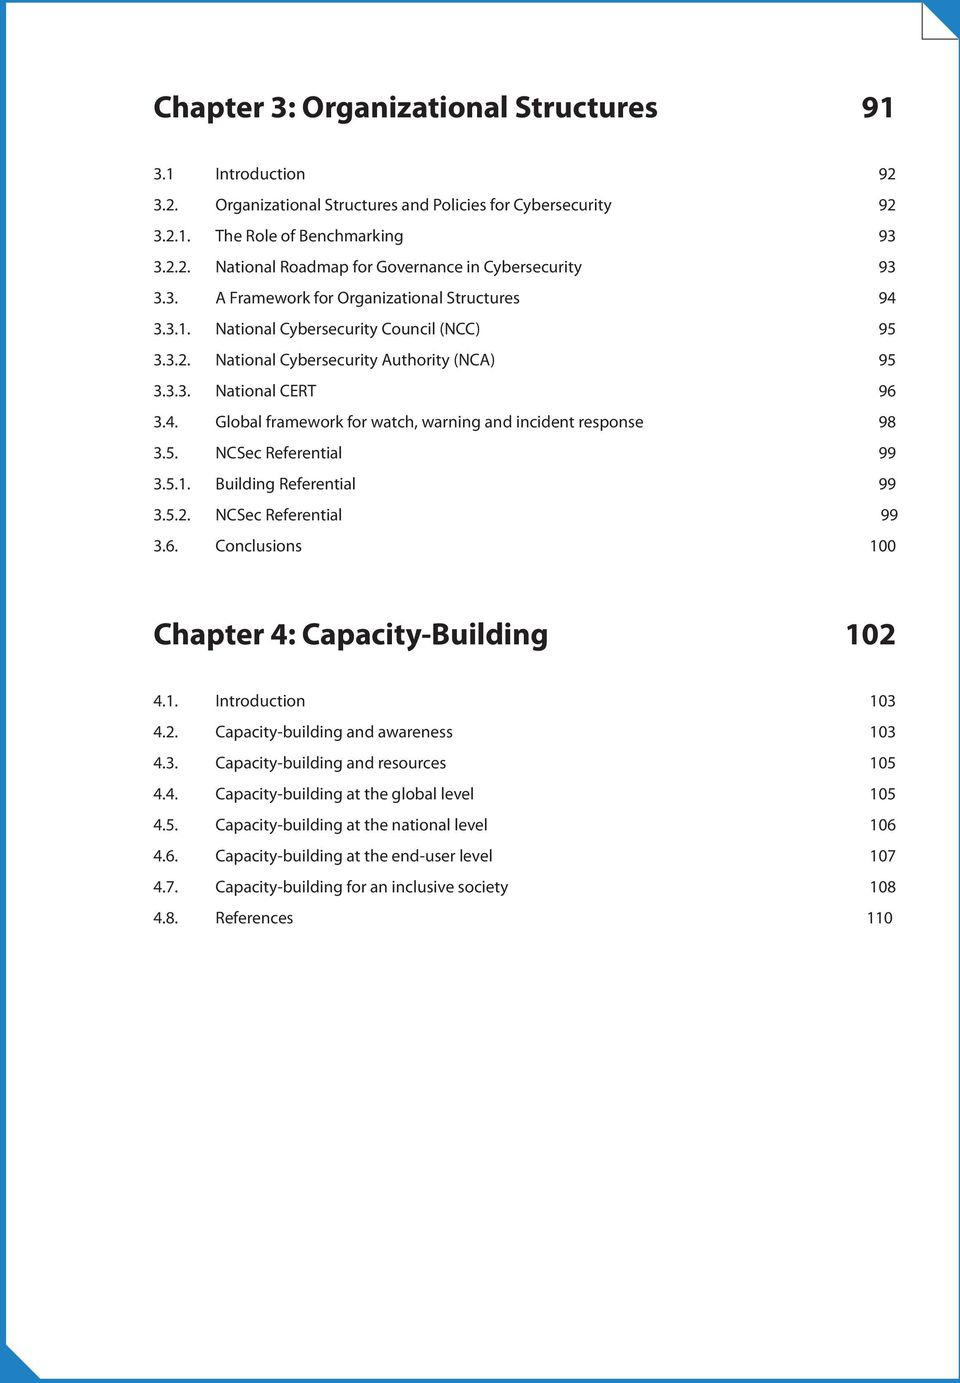 5. NCSec Referential 99 3.5.1. Building Referential 99 3.5.2. NCSec Referential 99 3.6. Conclusions 100 Chapter 4: Capacity-Building 102 4.1. Introduction 103 4.2. Capacity-building and awareness 103 4.